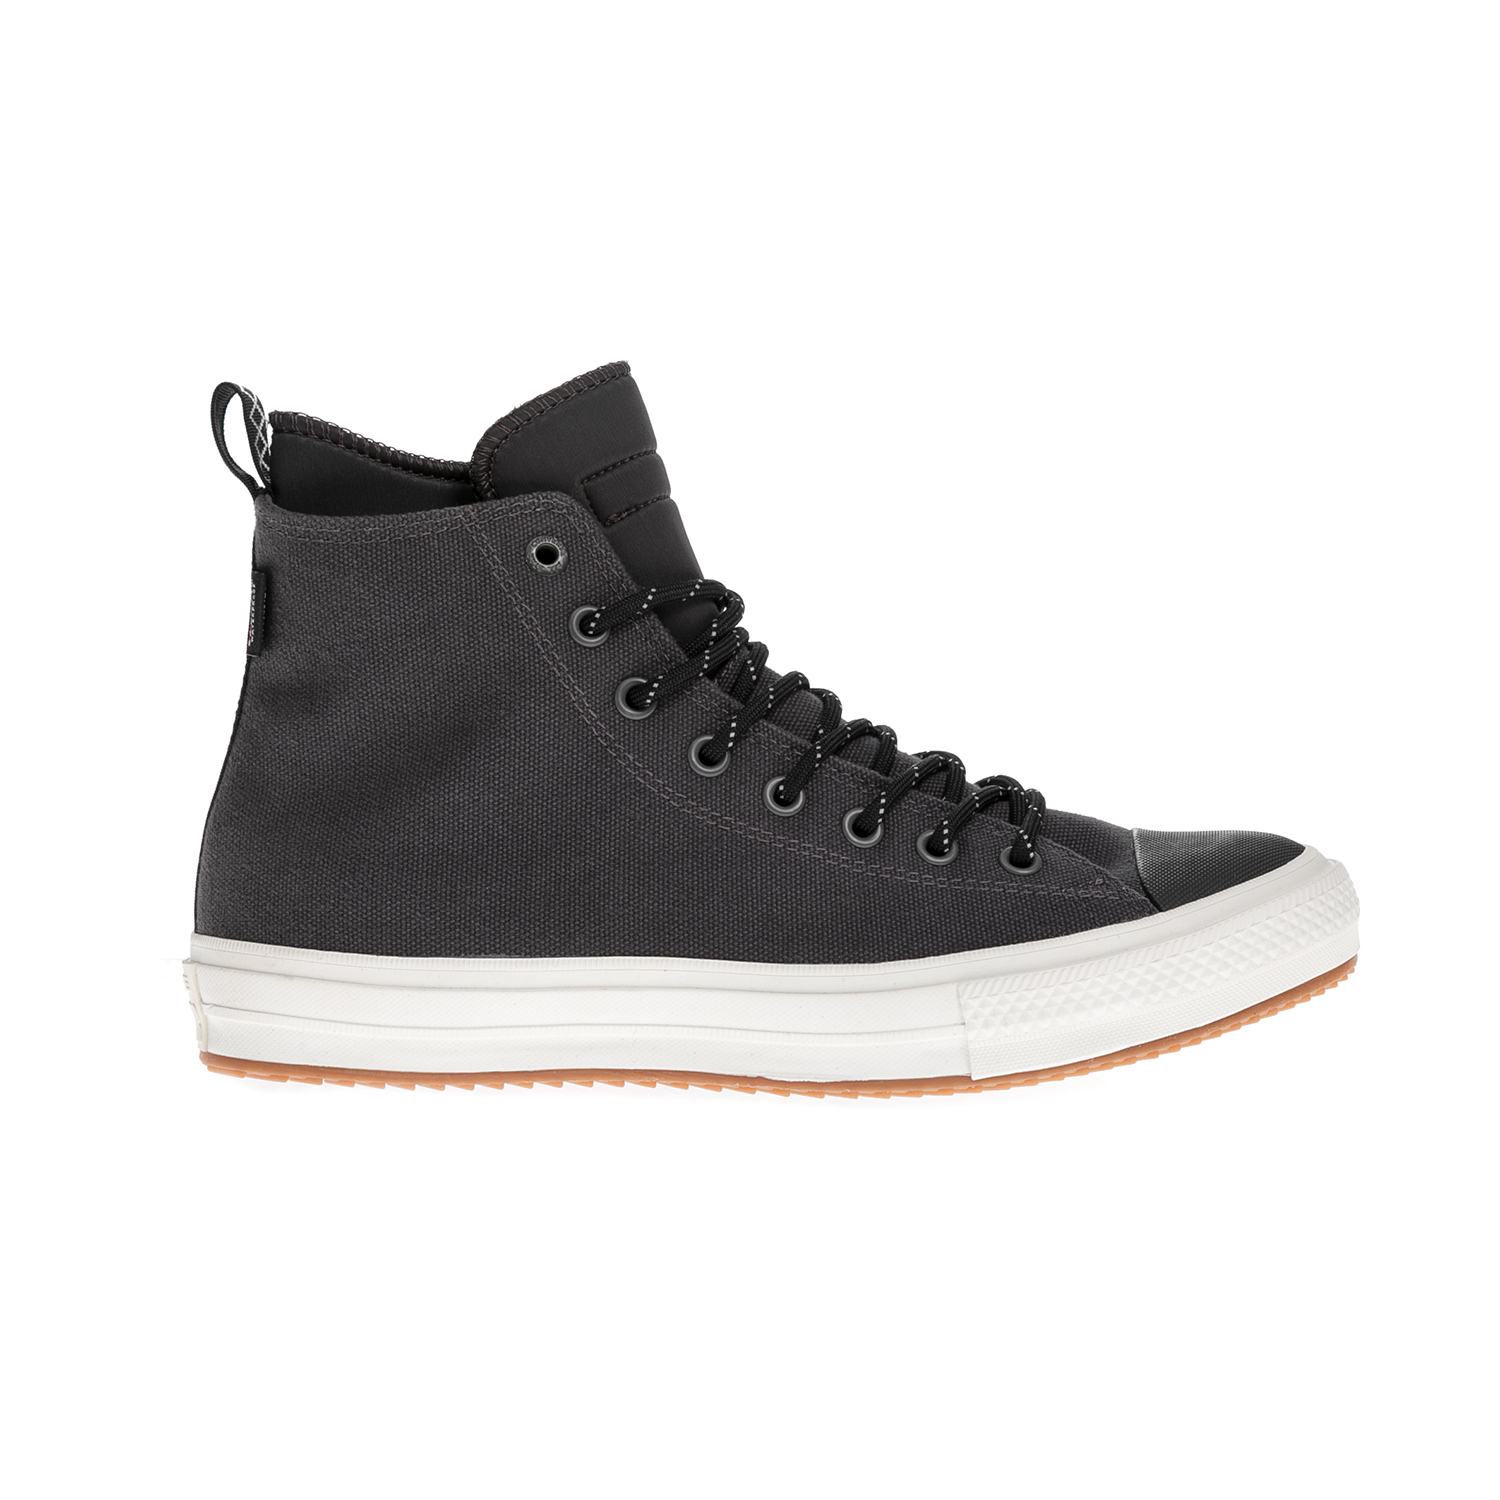 CONVERSE – Unisex παπούτσια Chuck Taylor All Star II Boot γκρι